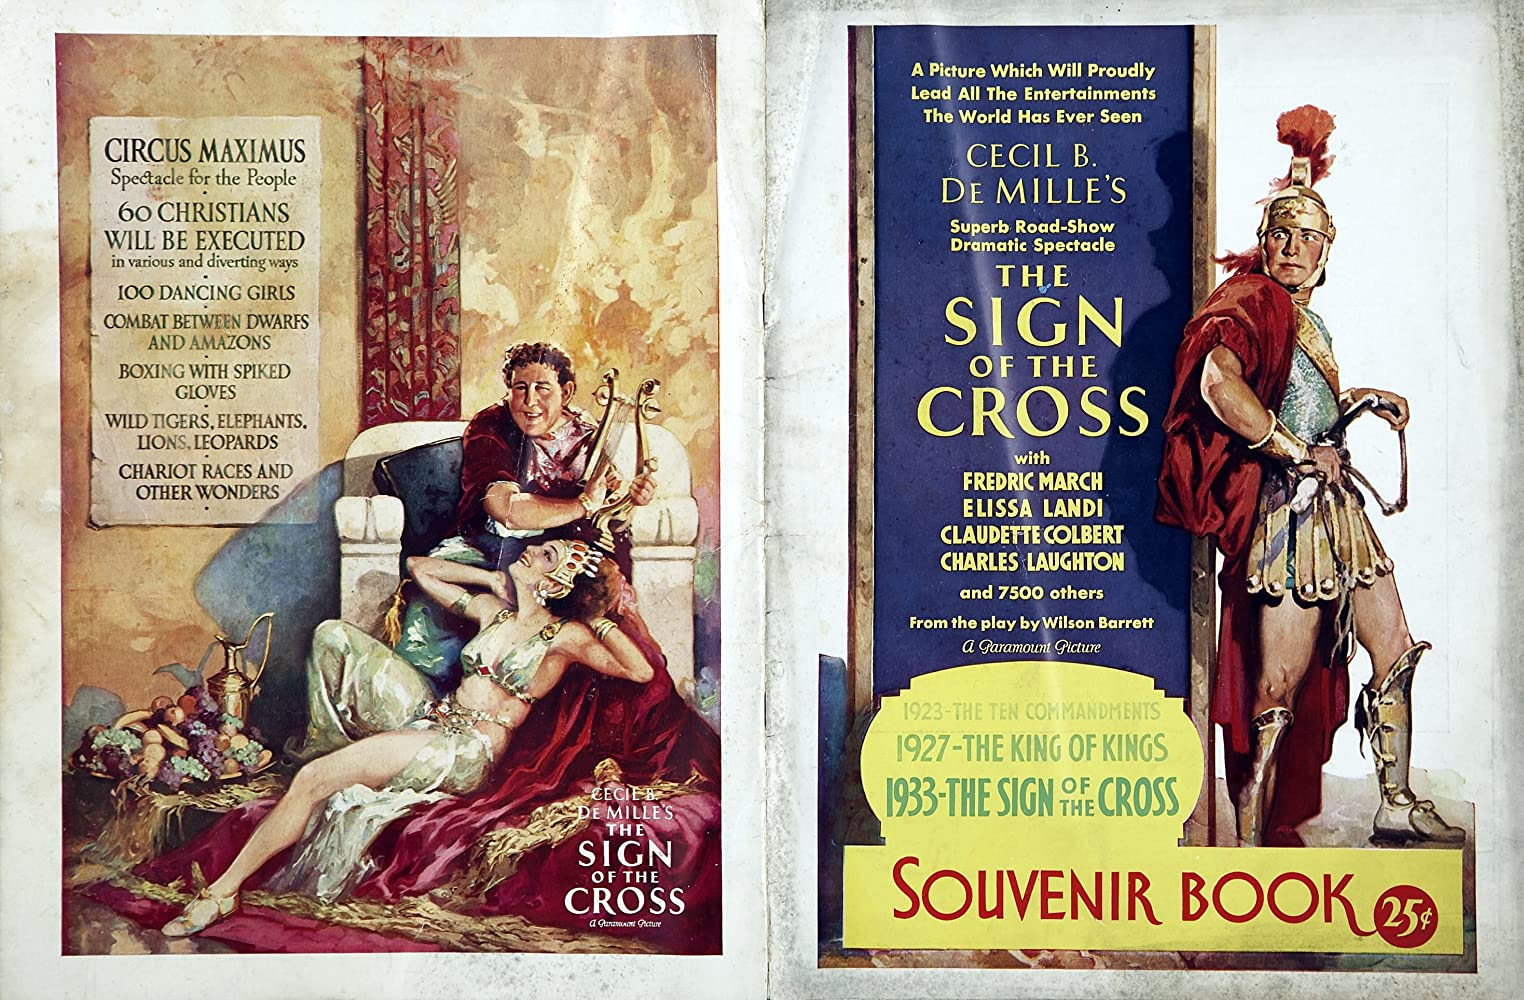 History of the sign of the cross